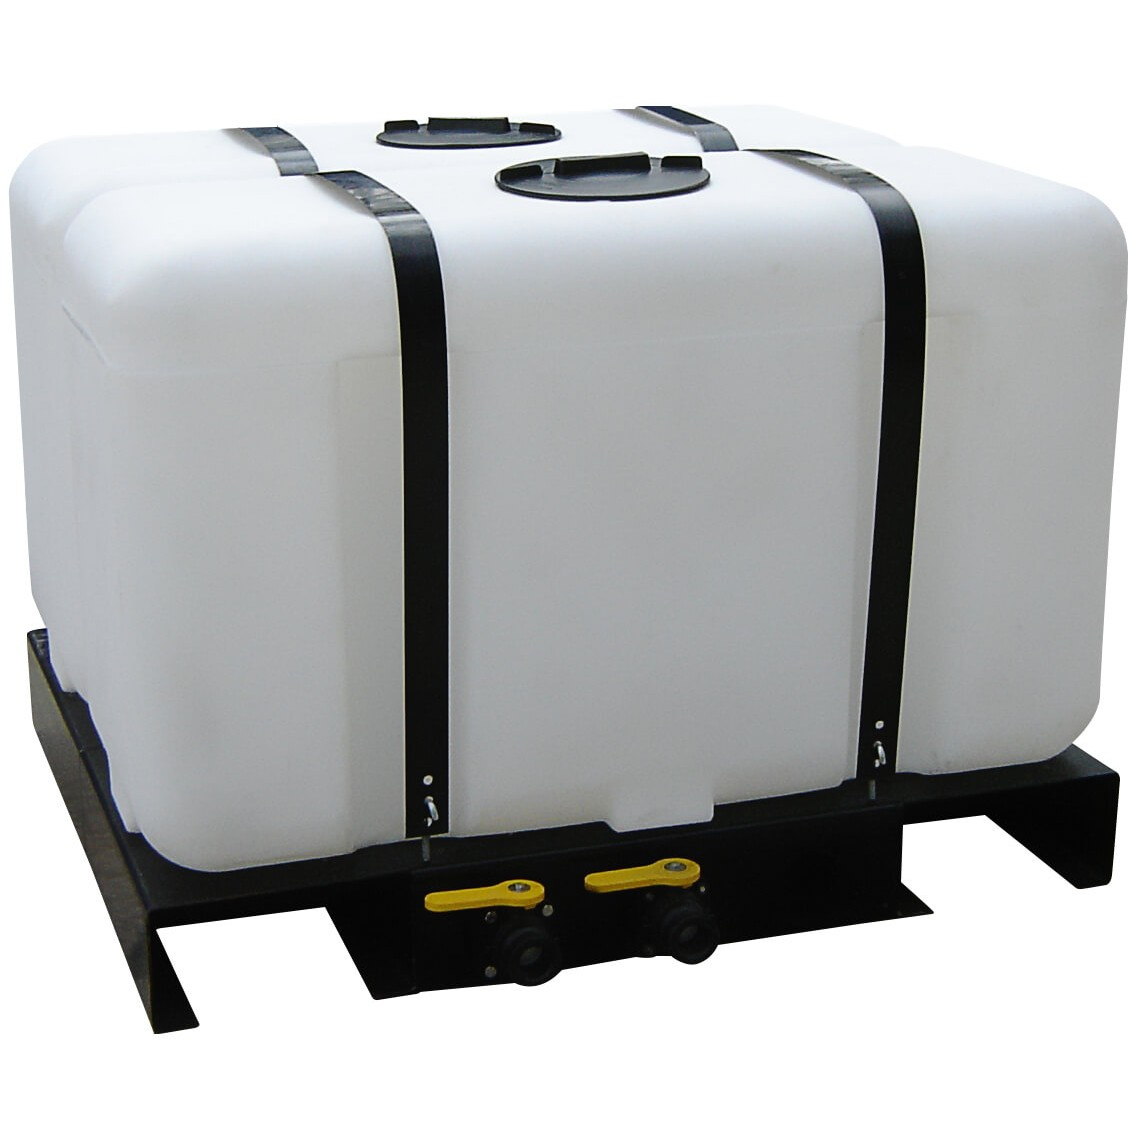 100rt2sa crmi 200 gallon skid mounted utility tank. Black Bedroom Furniture Sets. Home Design Ideas